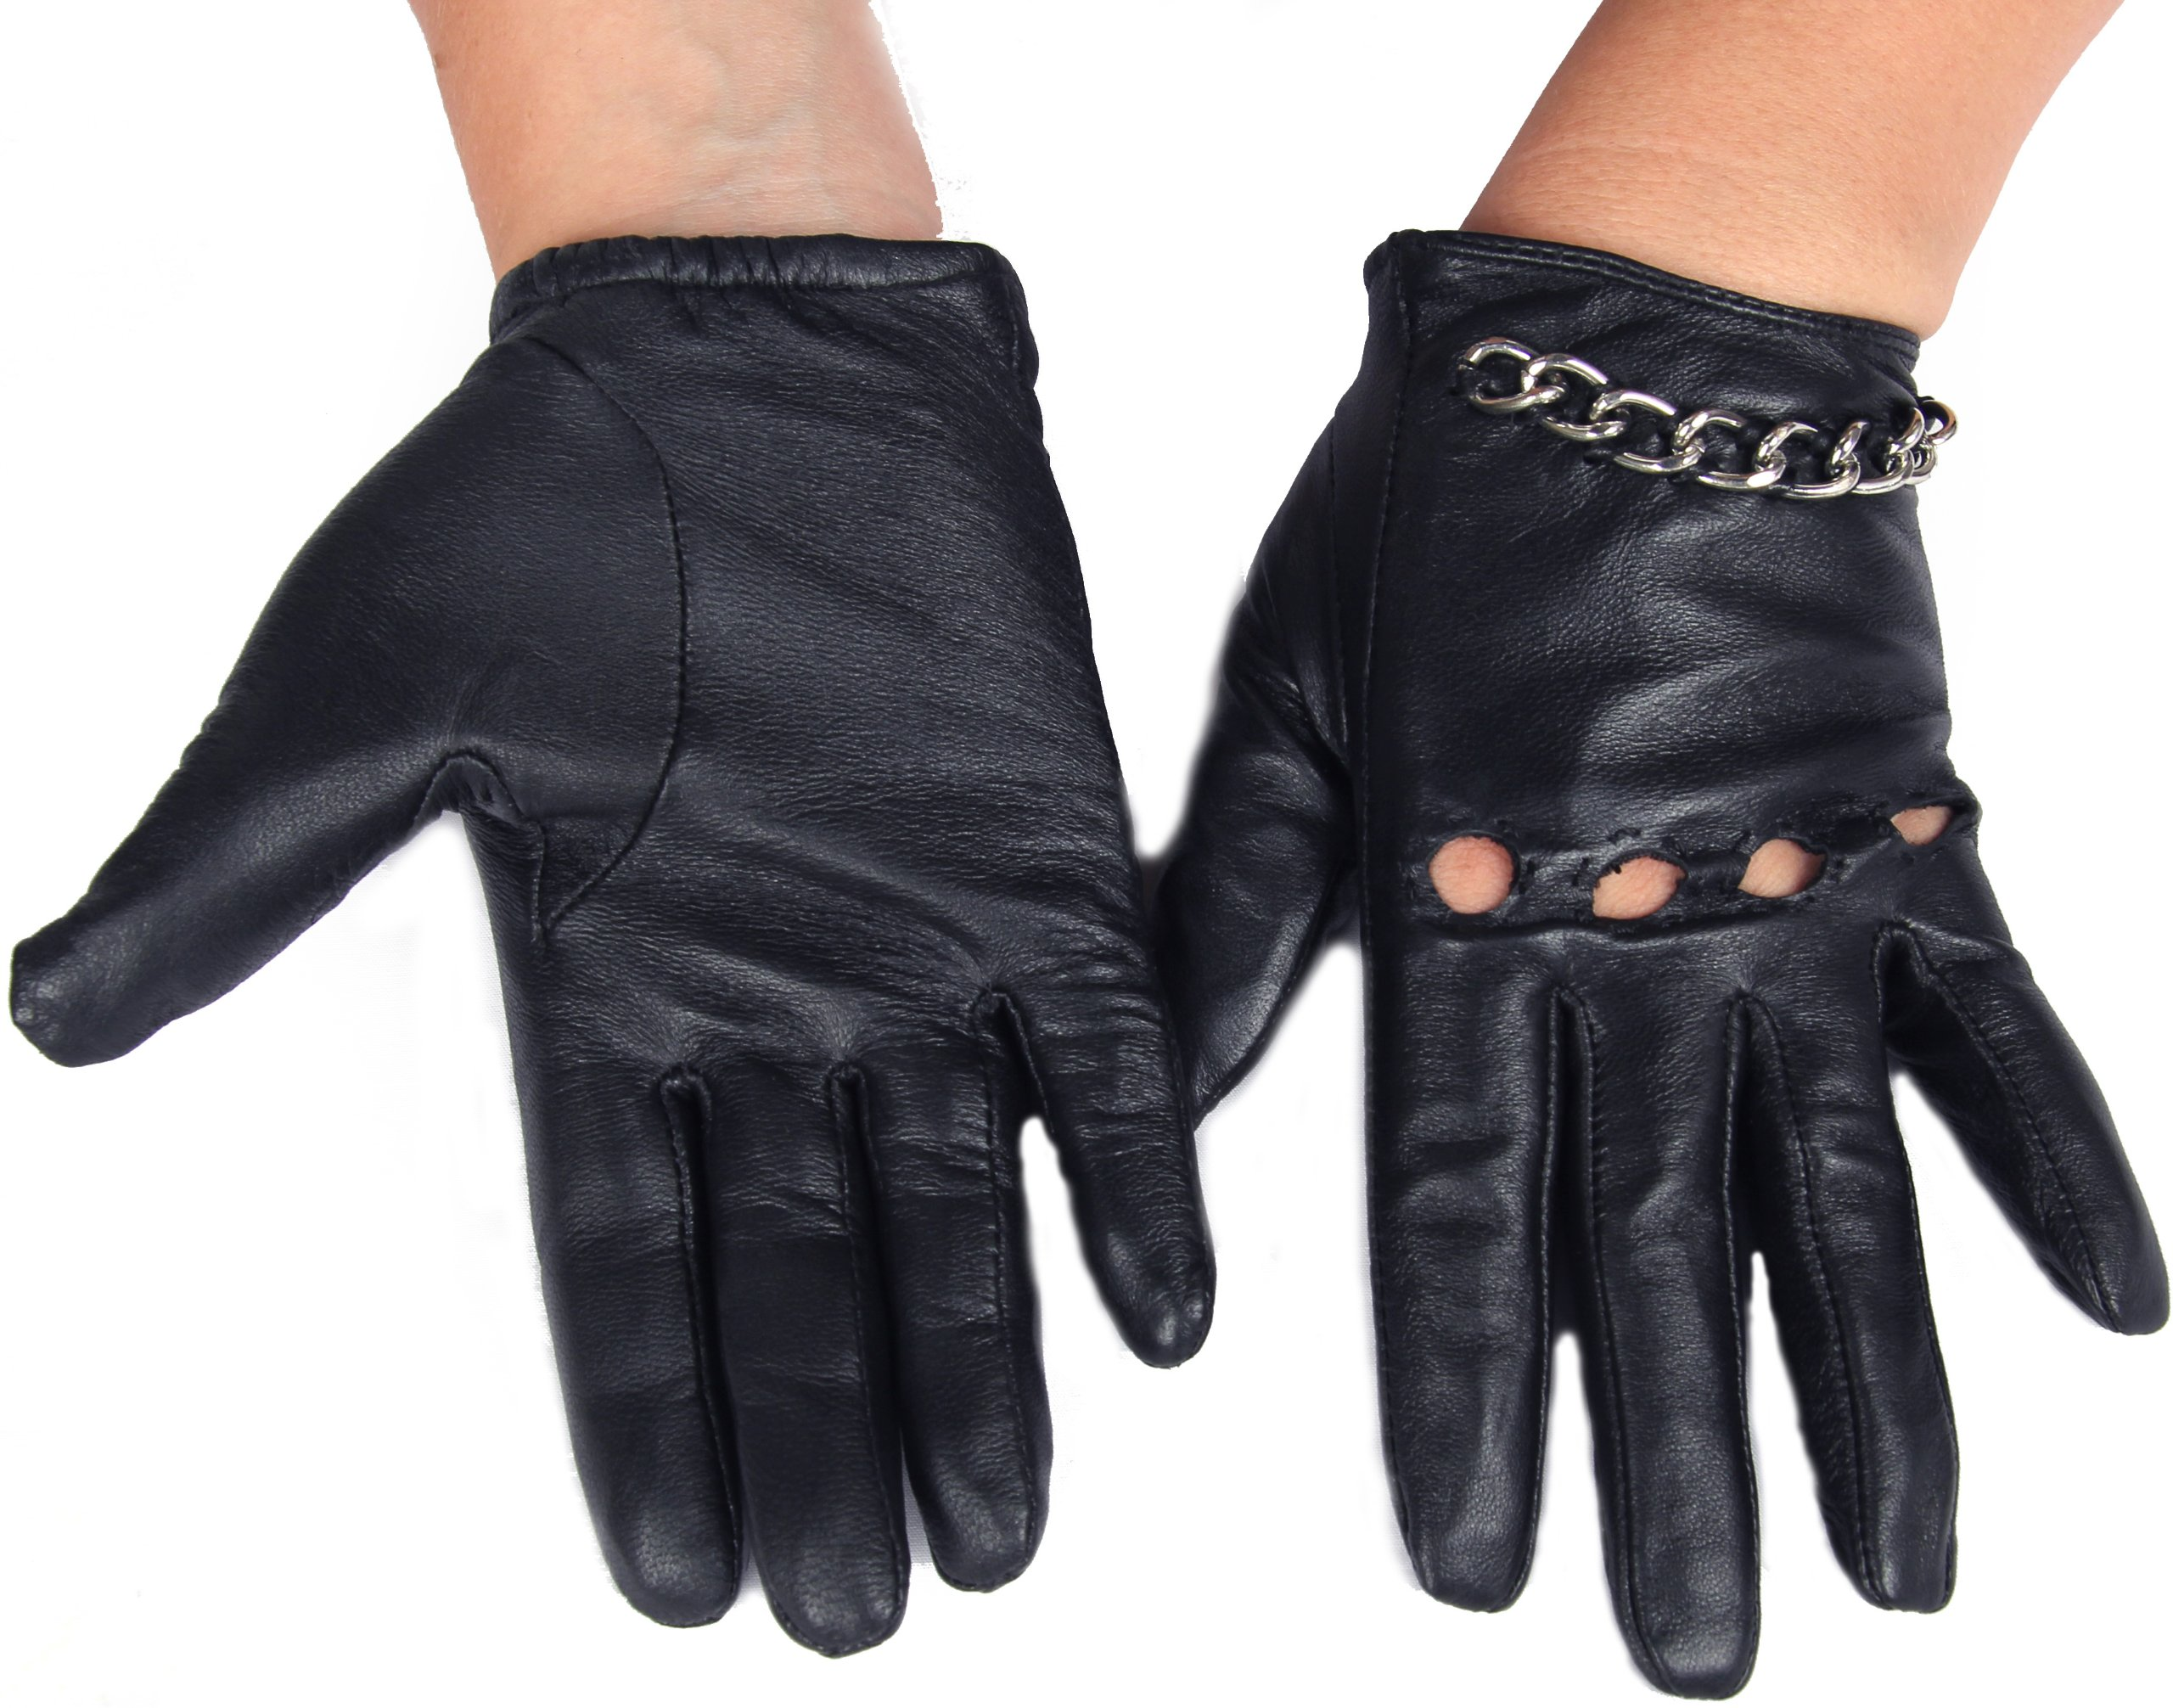 Calonice Amorino Women's Short Leather Driving Gloves silver metal chain M by Calonice Amorino (Image #3)